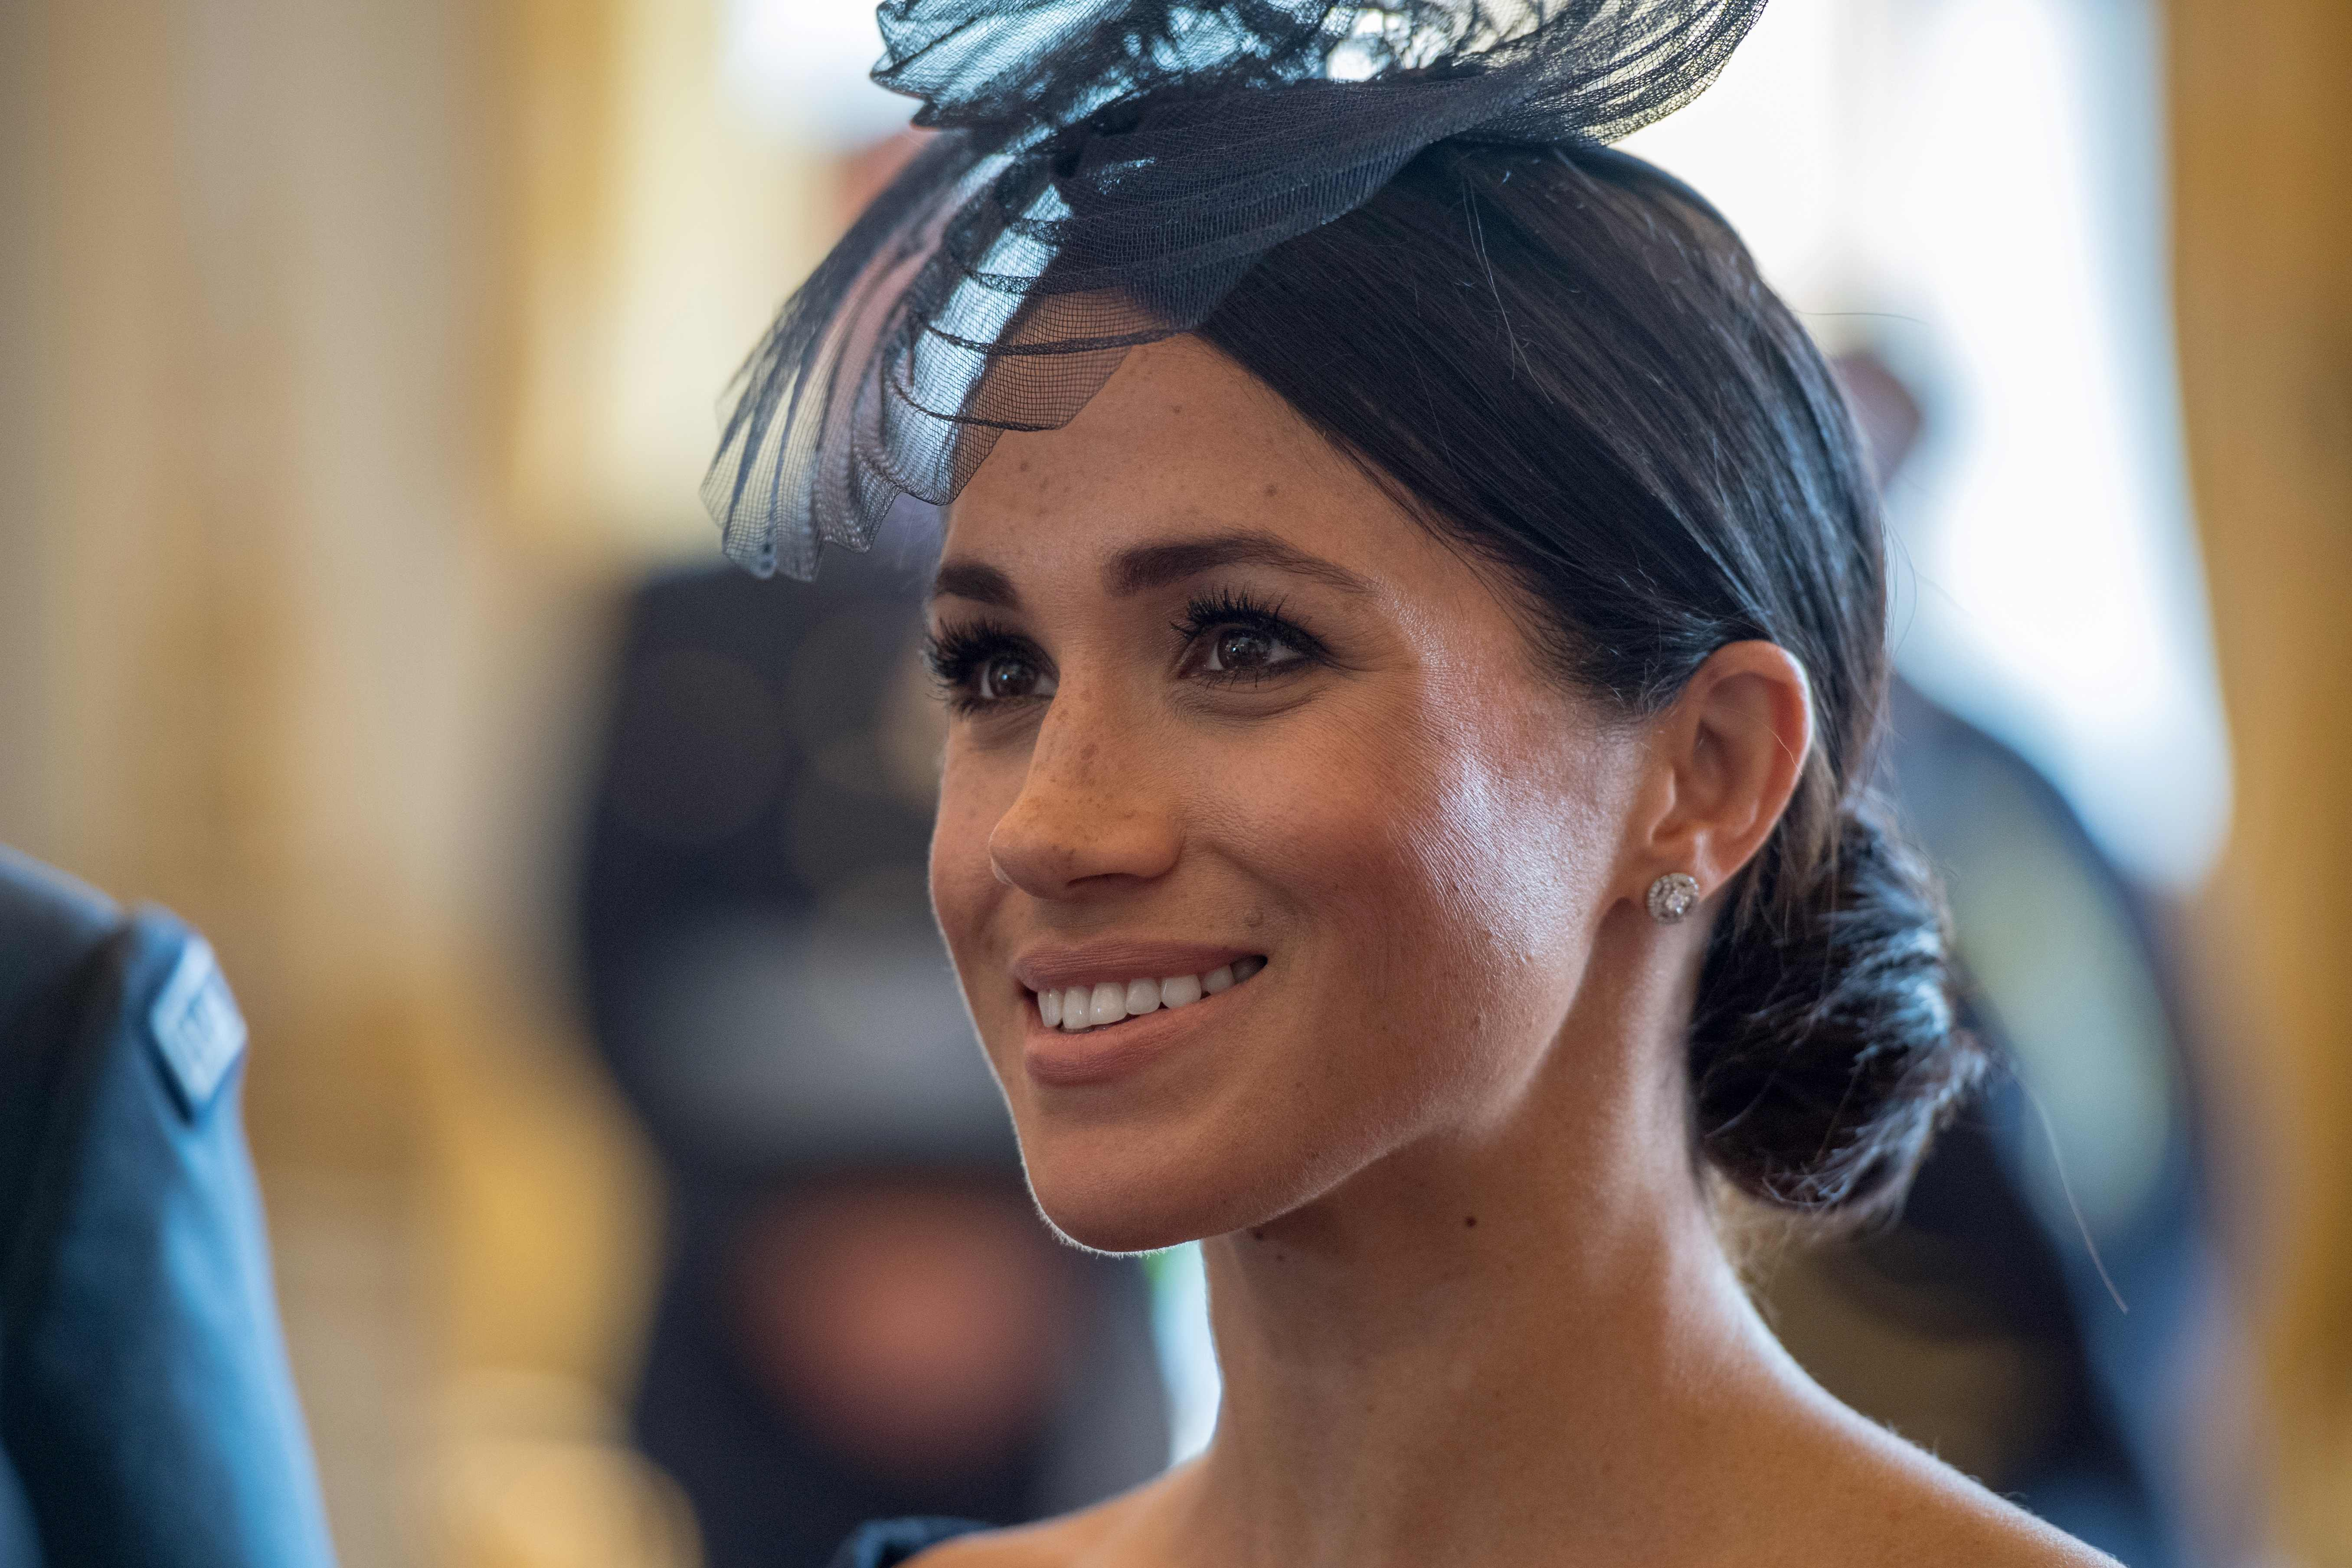 http://www usatoday com/picture-gallery/life/2018/06/11/duchess